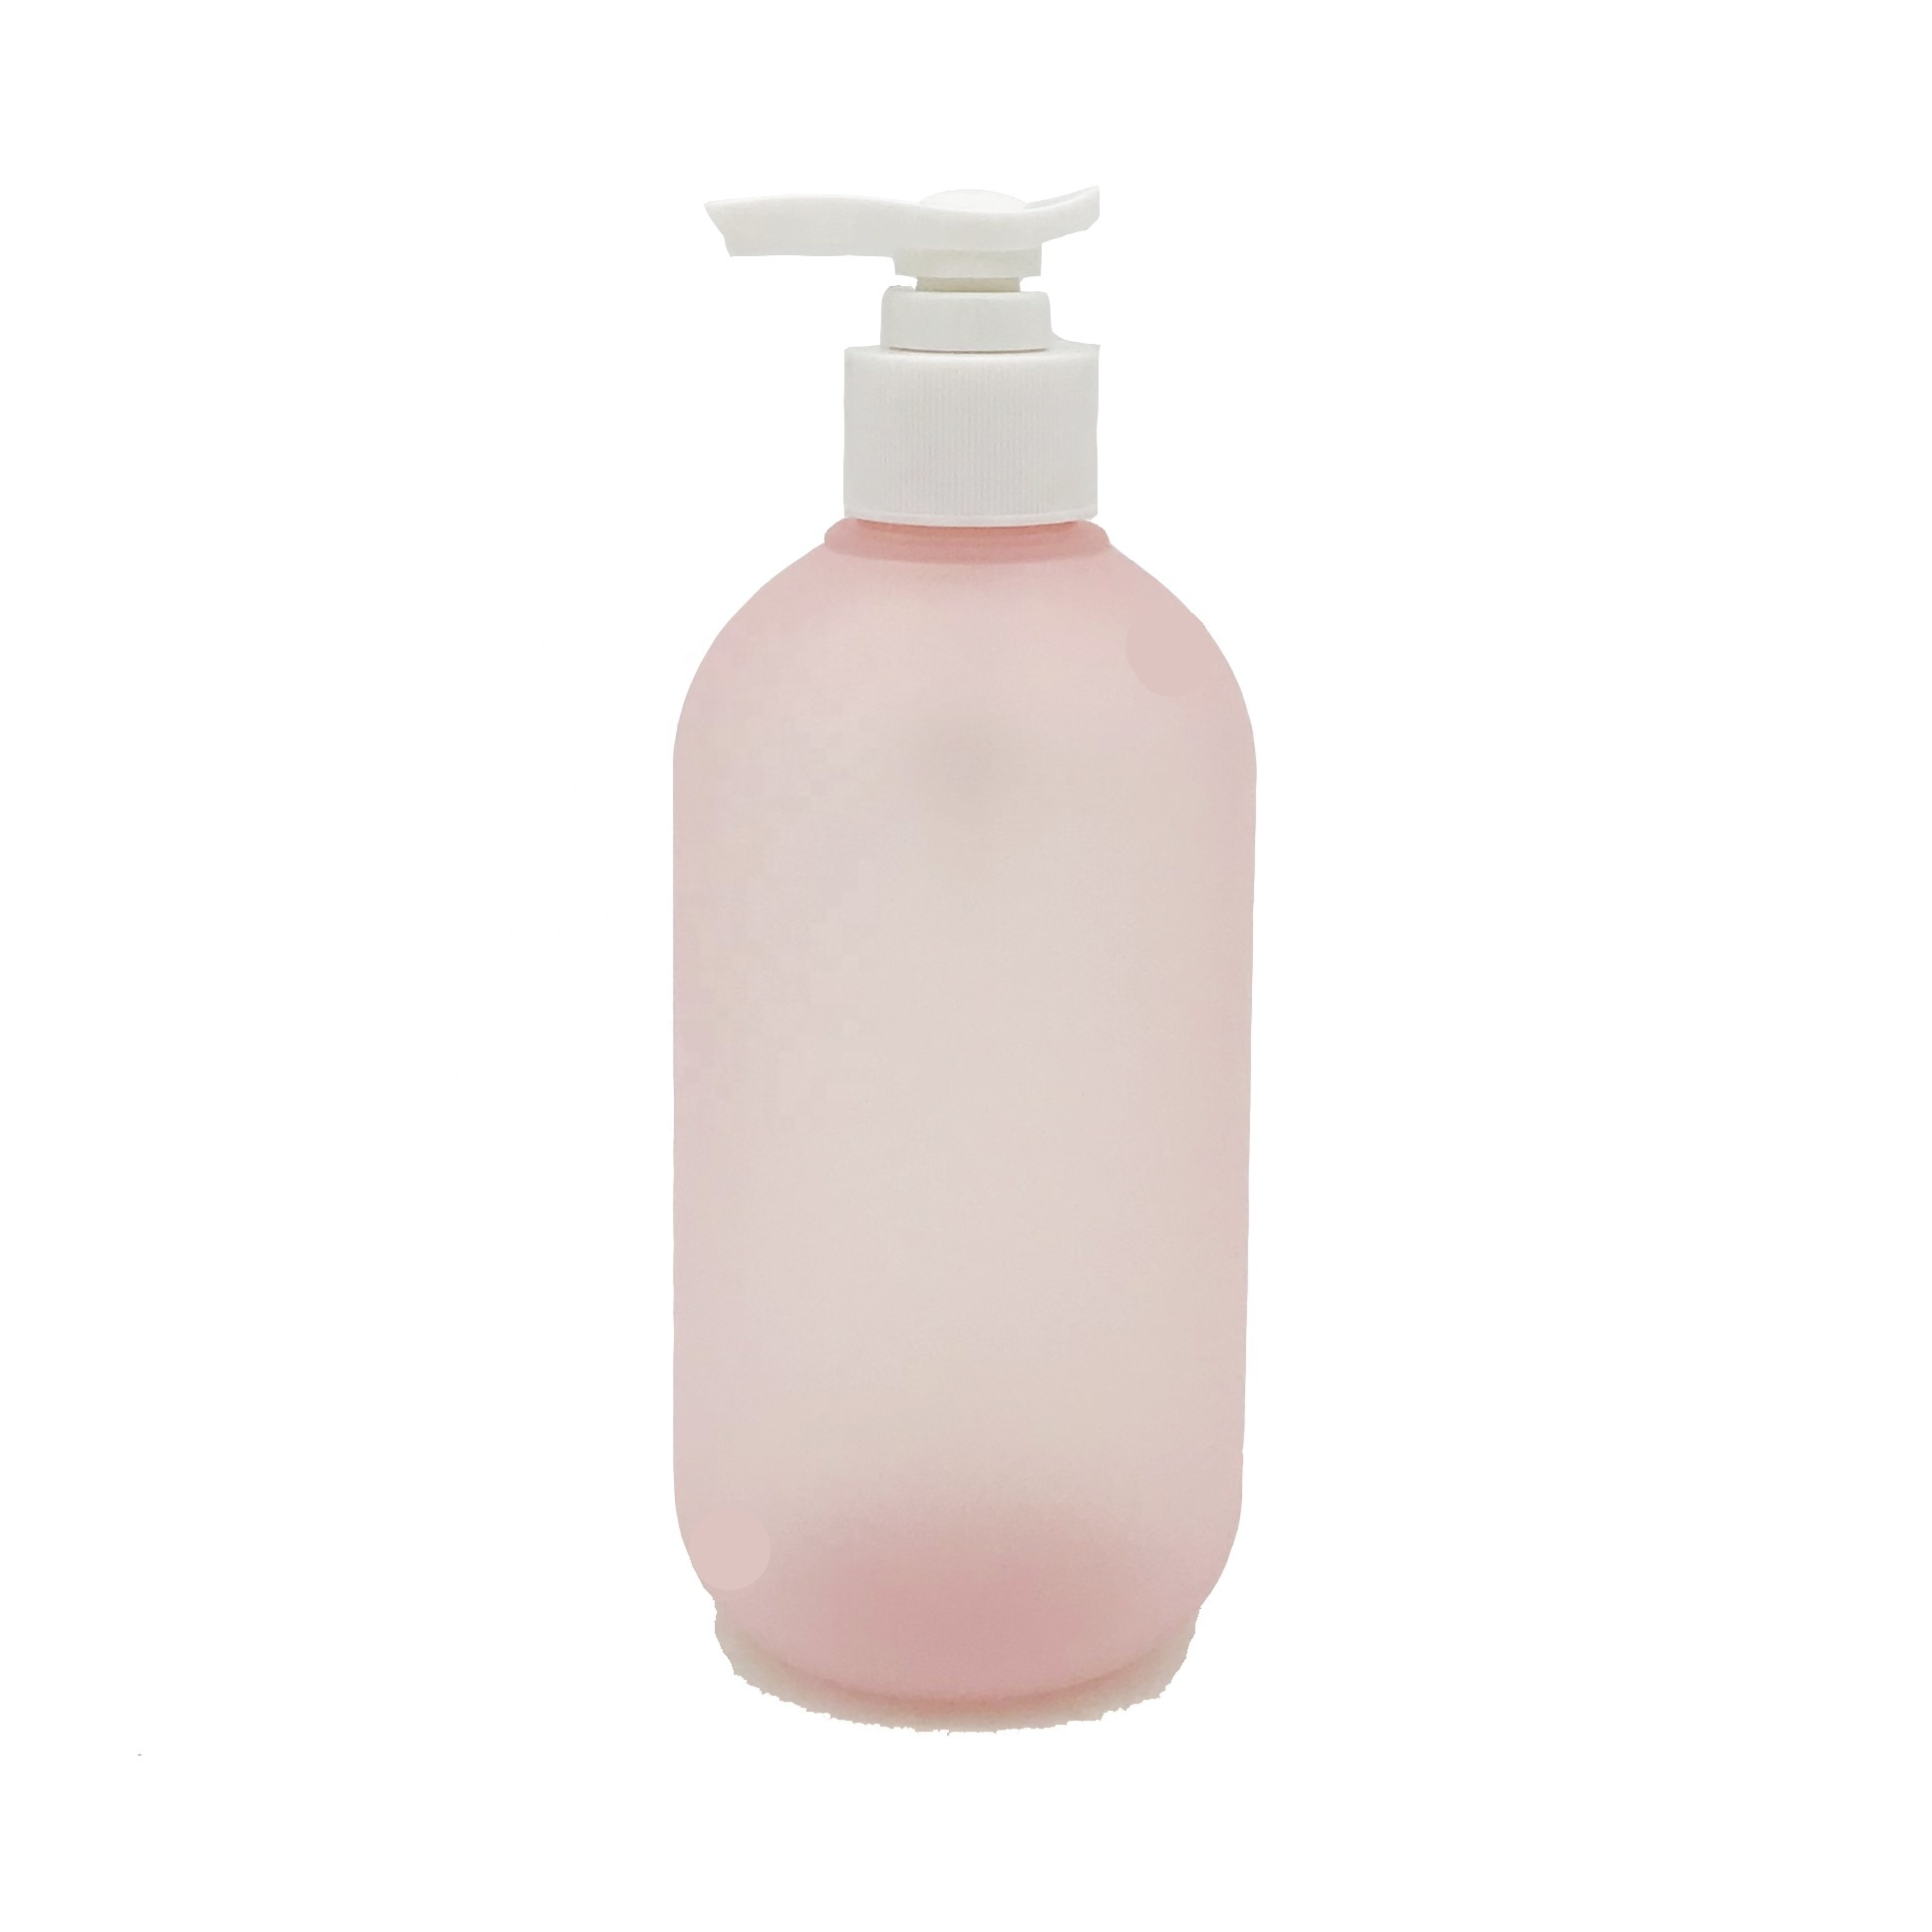 300 ML HDPE LOTION BOTTLE WITH DISPENSER PUMP